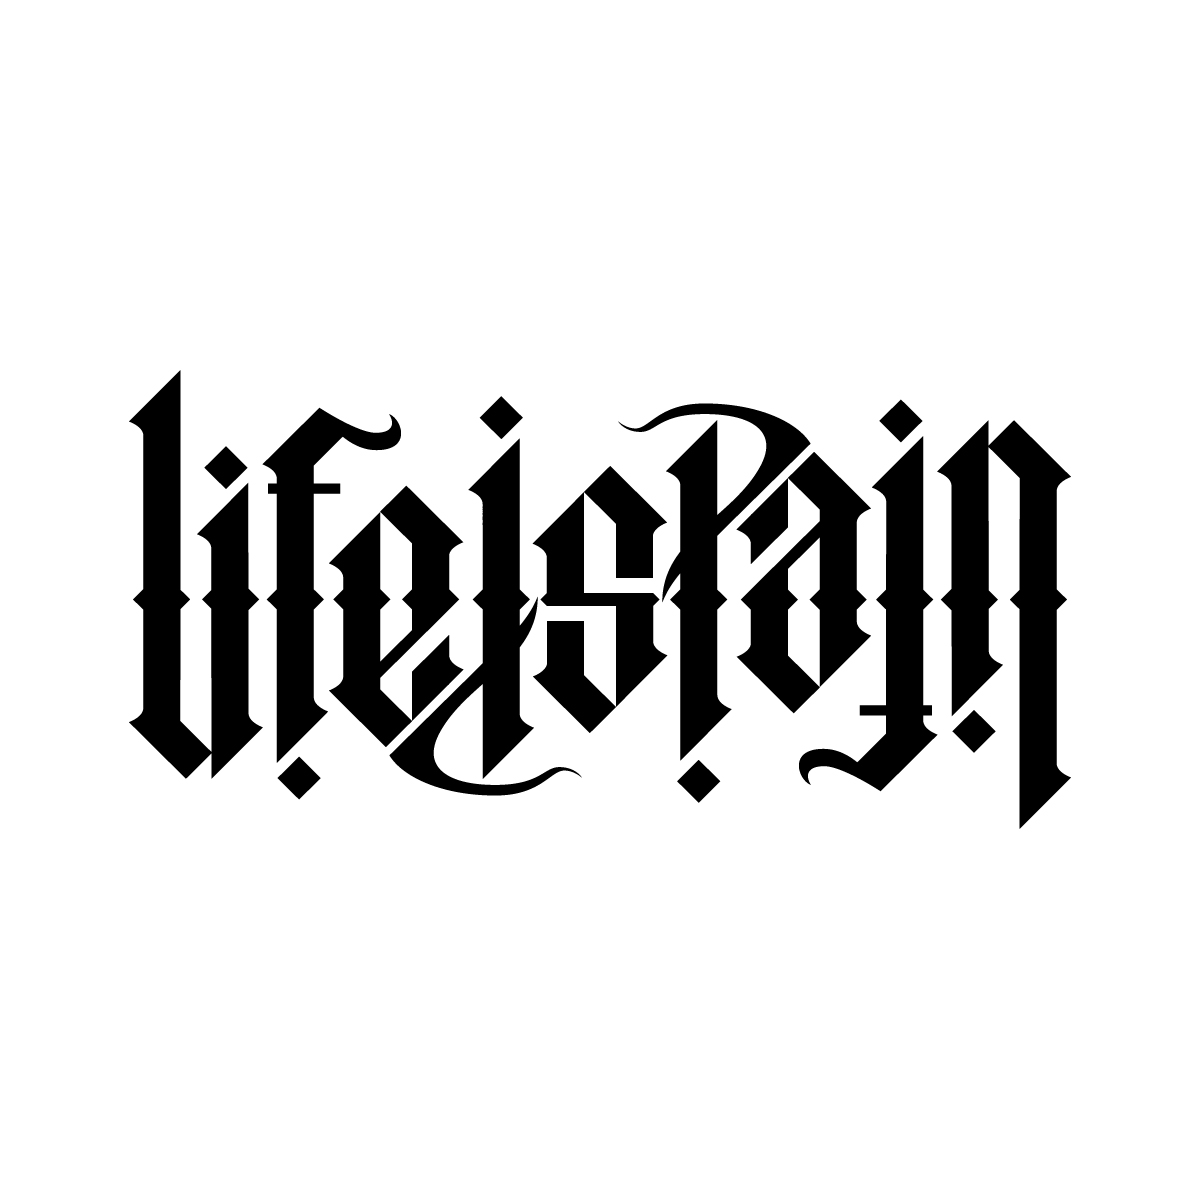 Unterart Ambigram Design Turning The World Upside Down Ideas And Designs